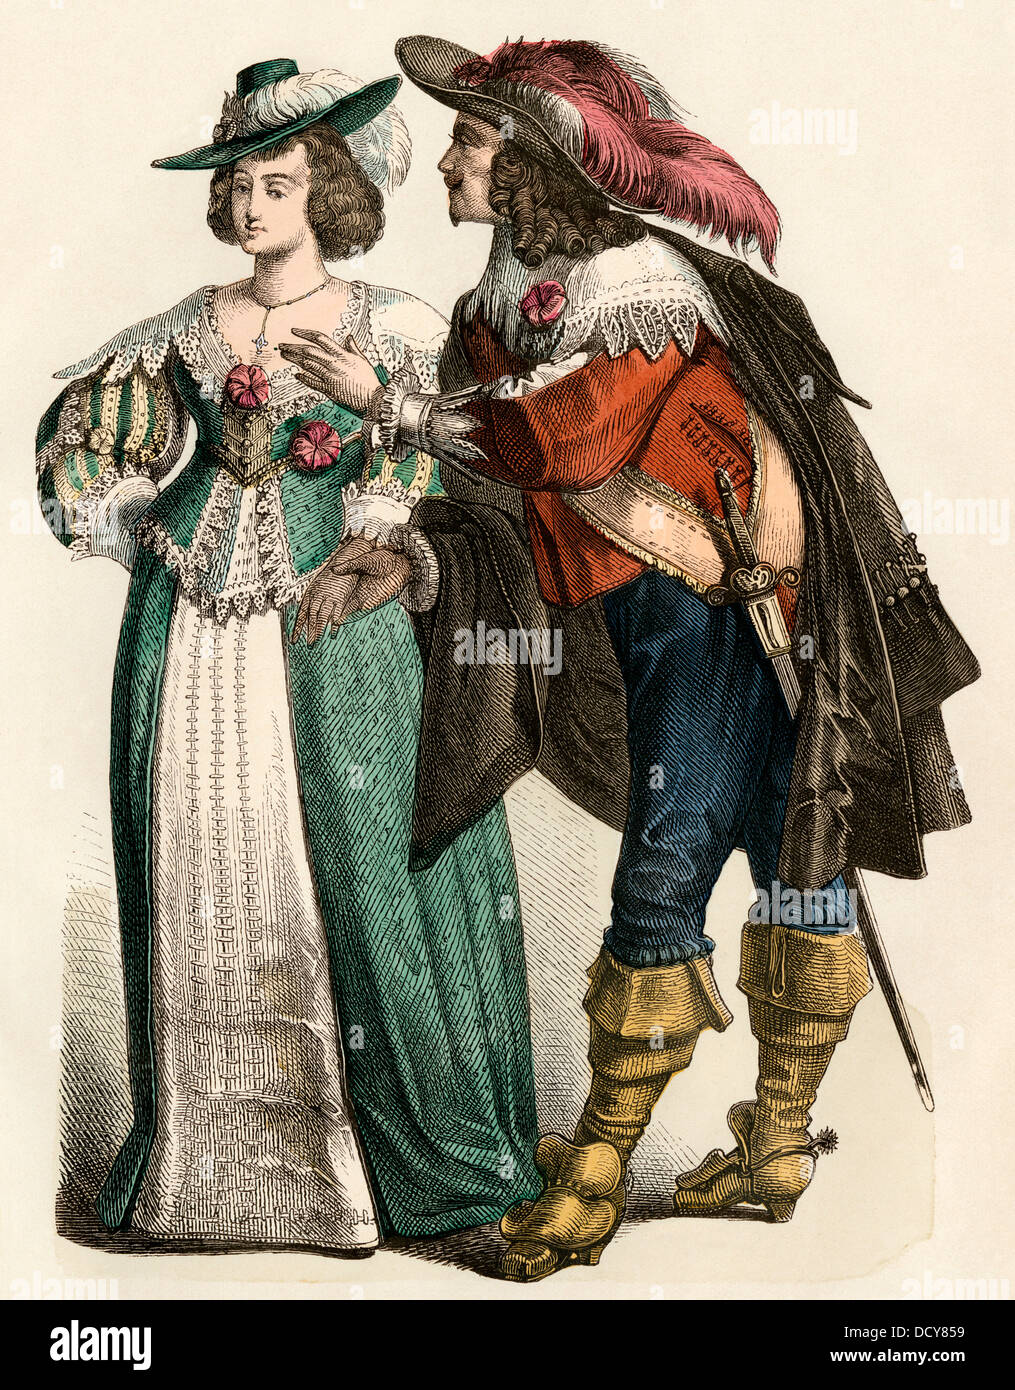 Fashionable German couple of the 1600s. Hand-colored print - Stock Image